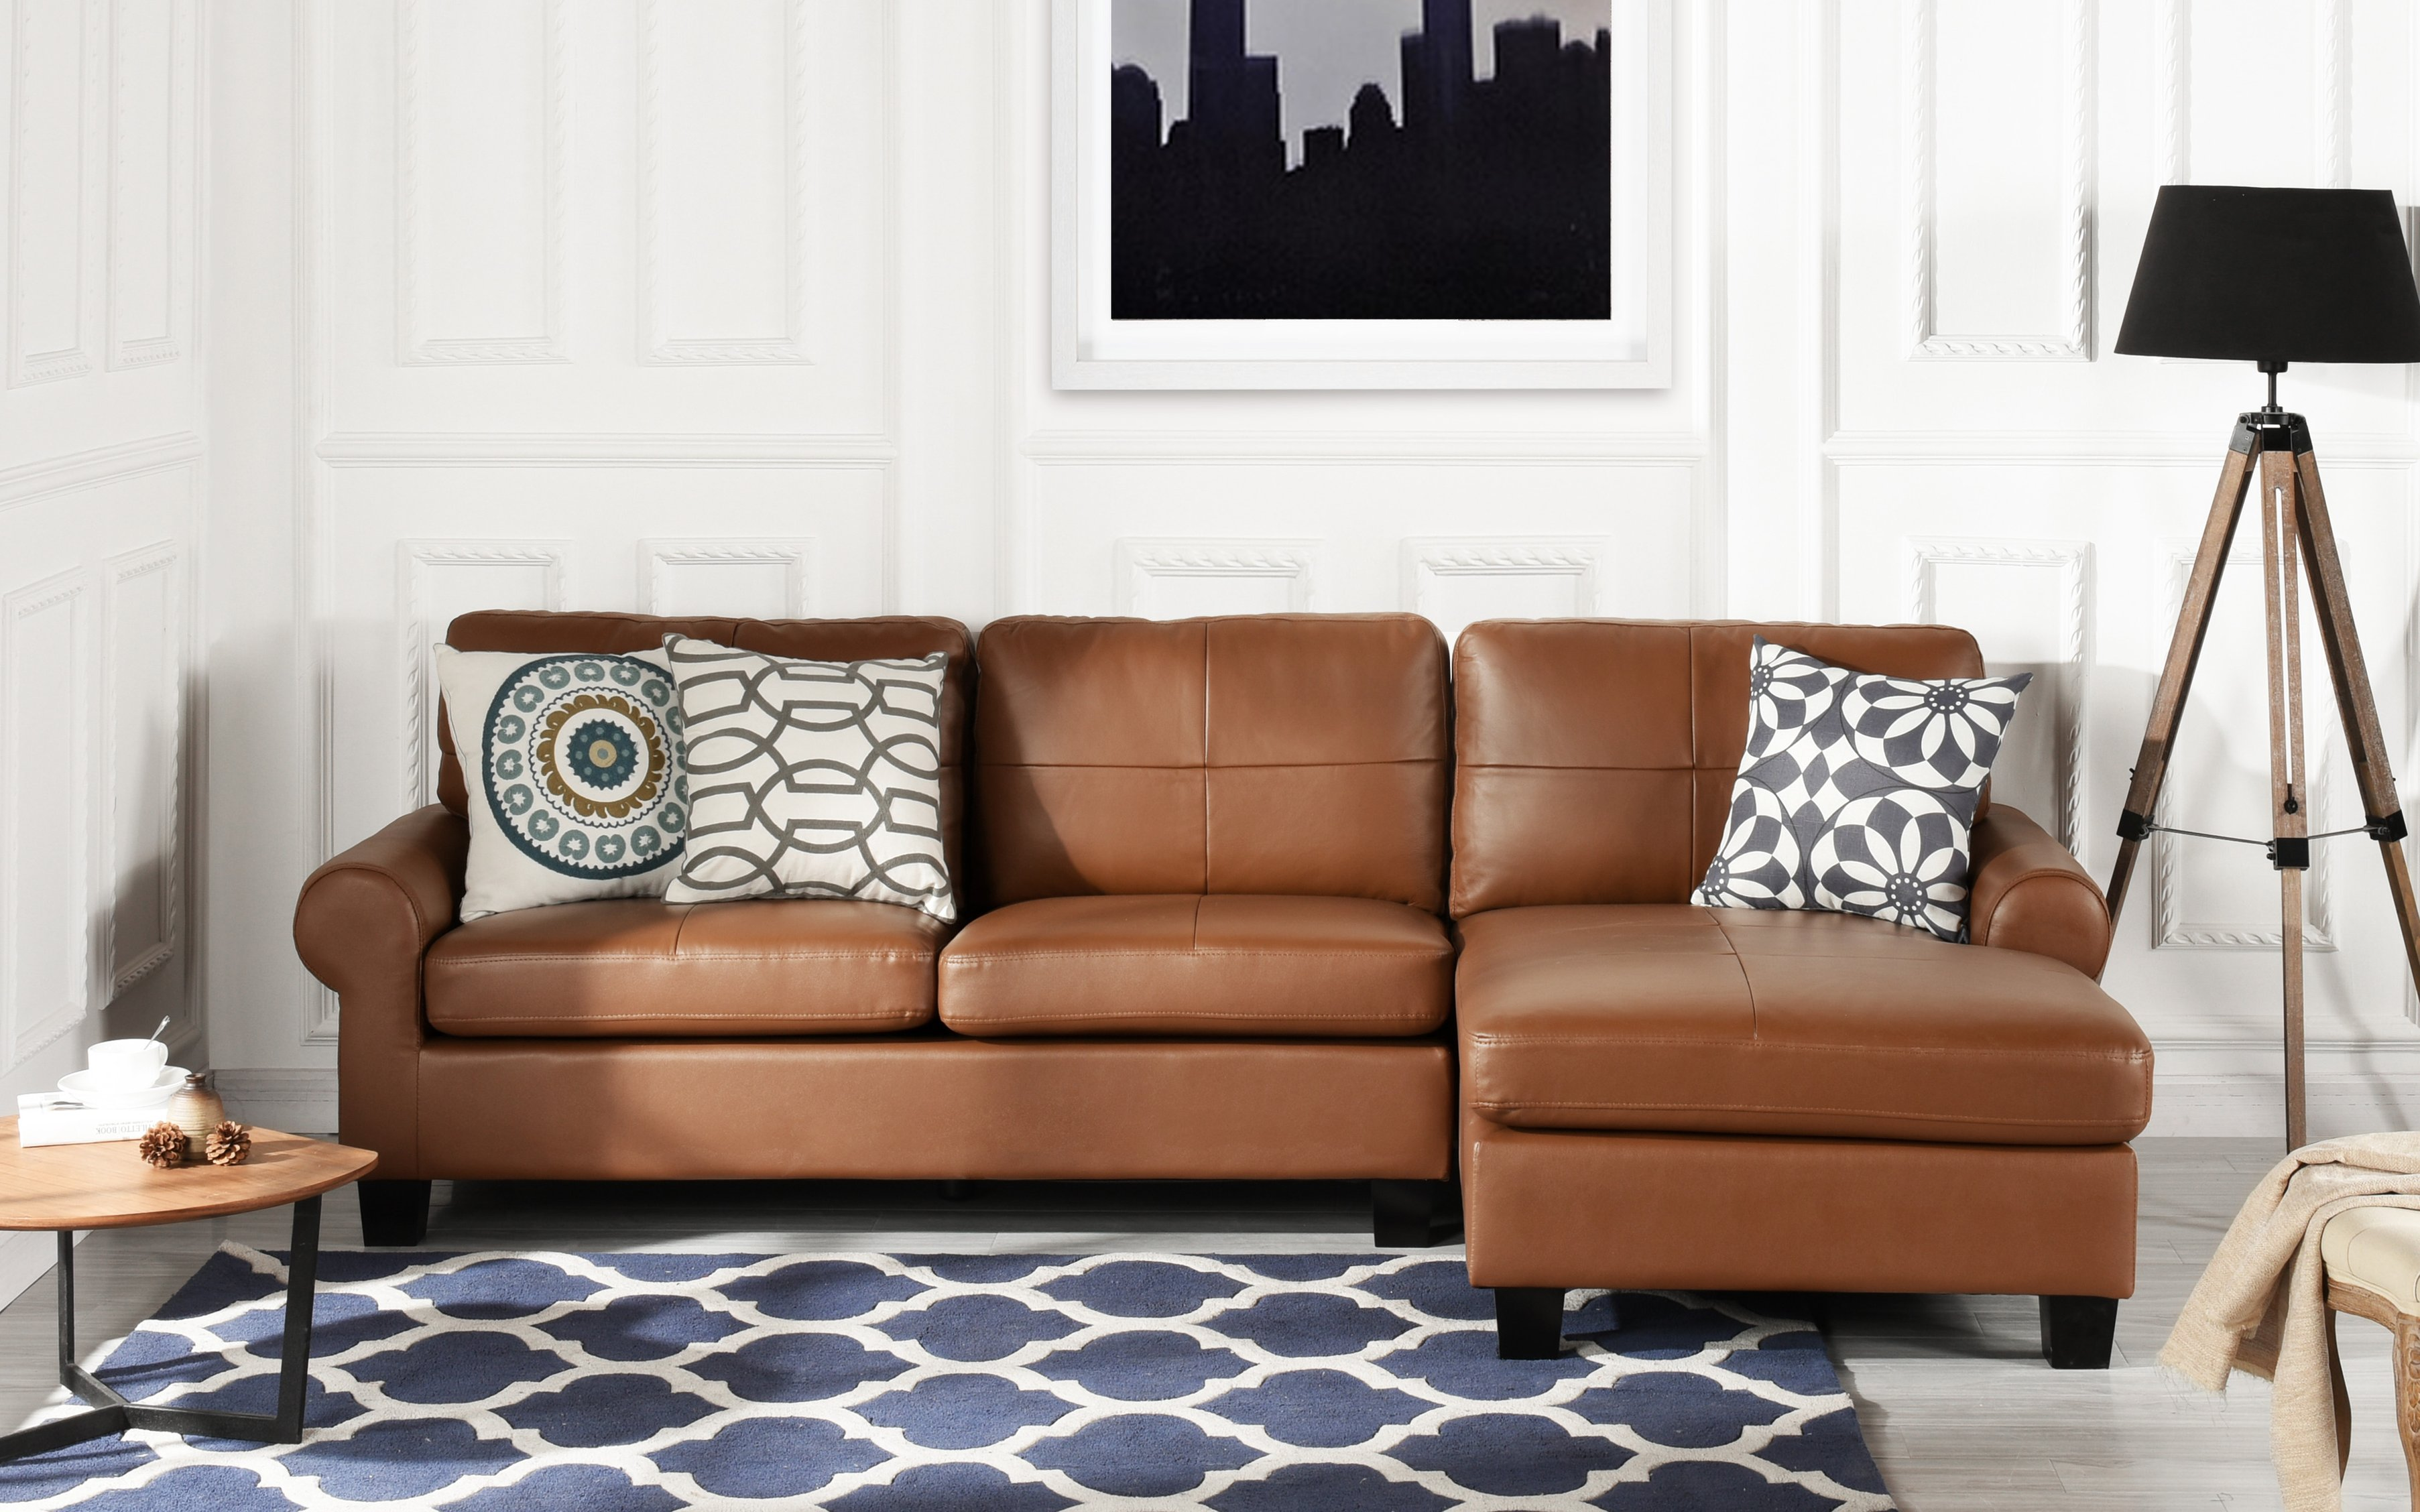 Phenomenal Details About Leather Match Light Brown Sectional Sofa L Shape Modern Couch Removable Cushions Andrewgaddart Wooden Chair Designs For Living Room Andrewgaddartcom